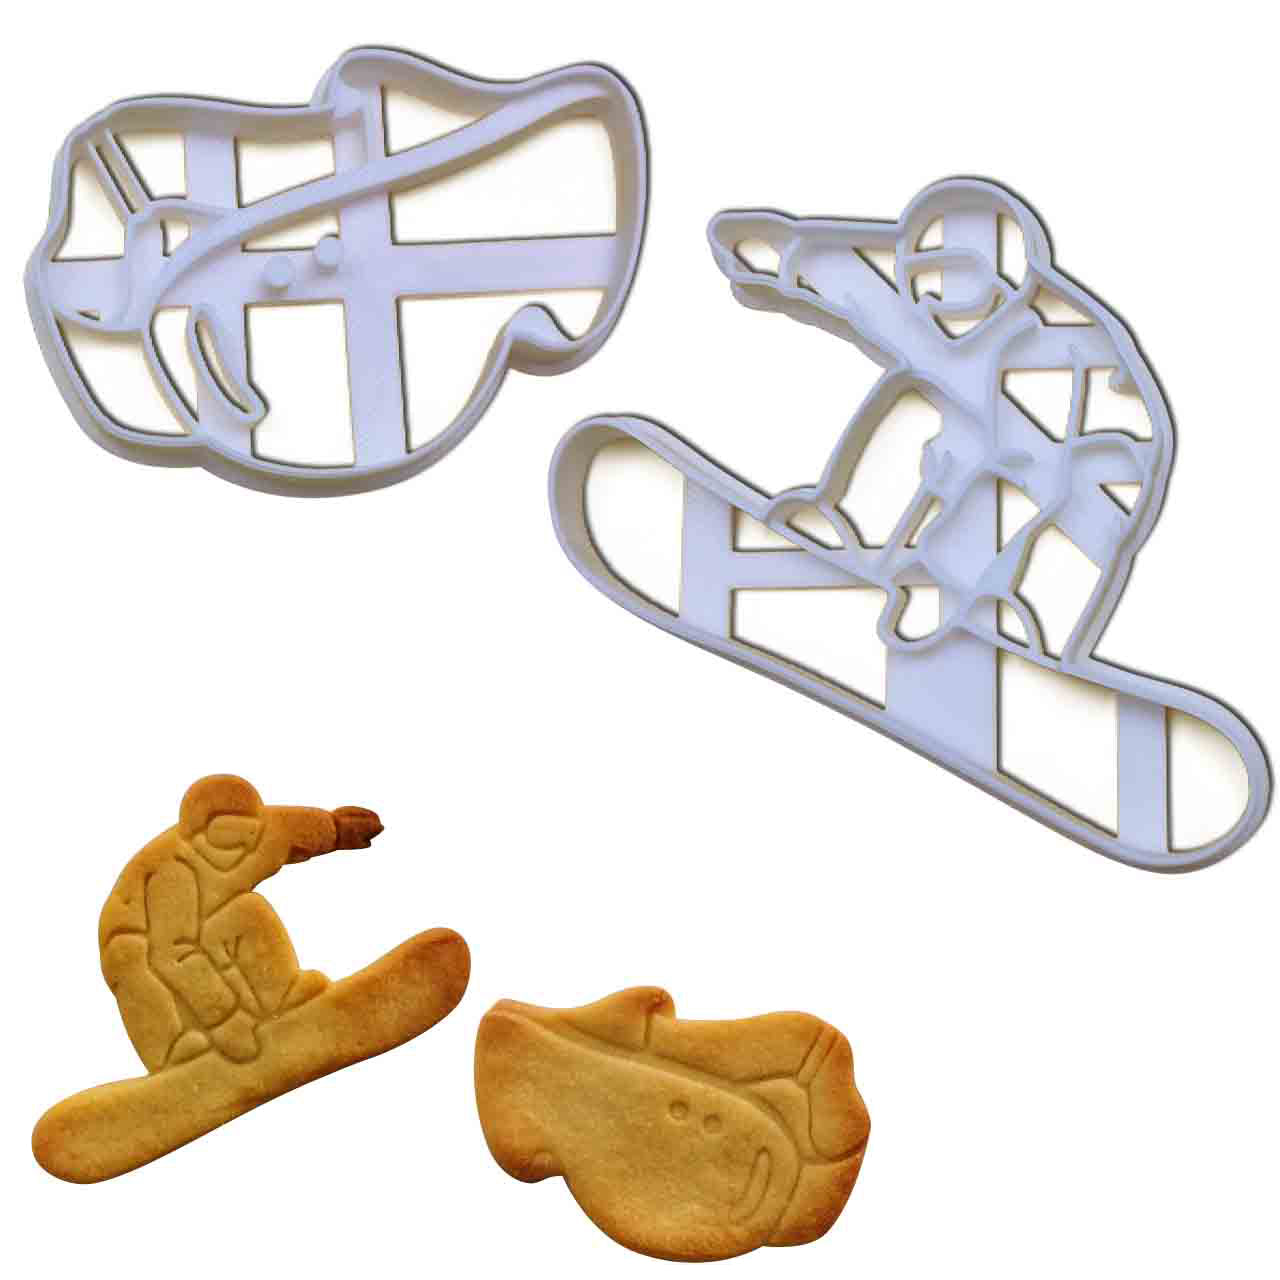 set of 2 snowboarding cookie cutters, featuring a snowboarder and a snowboard goggles